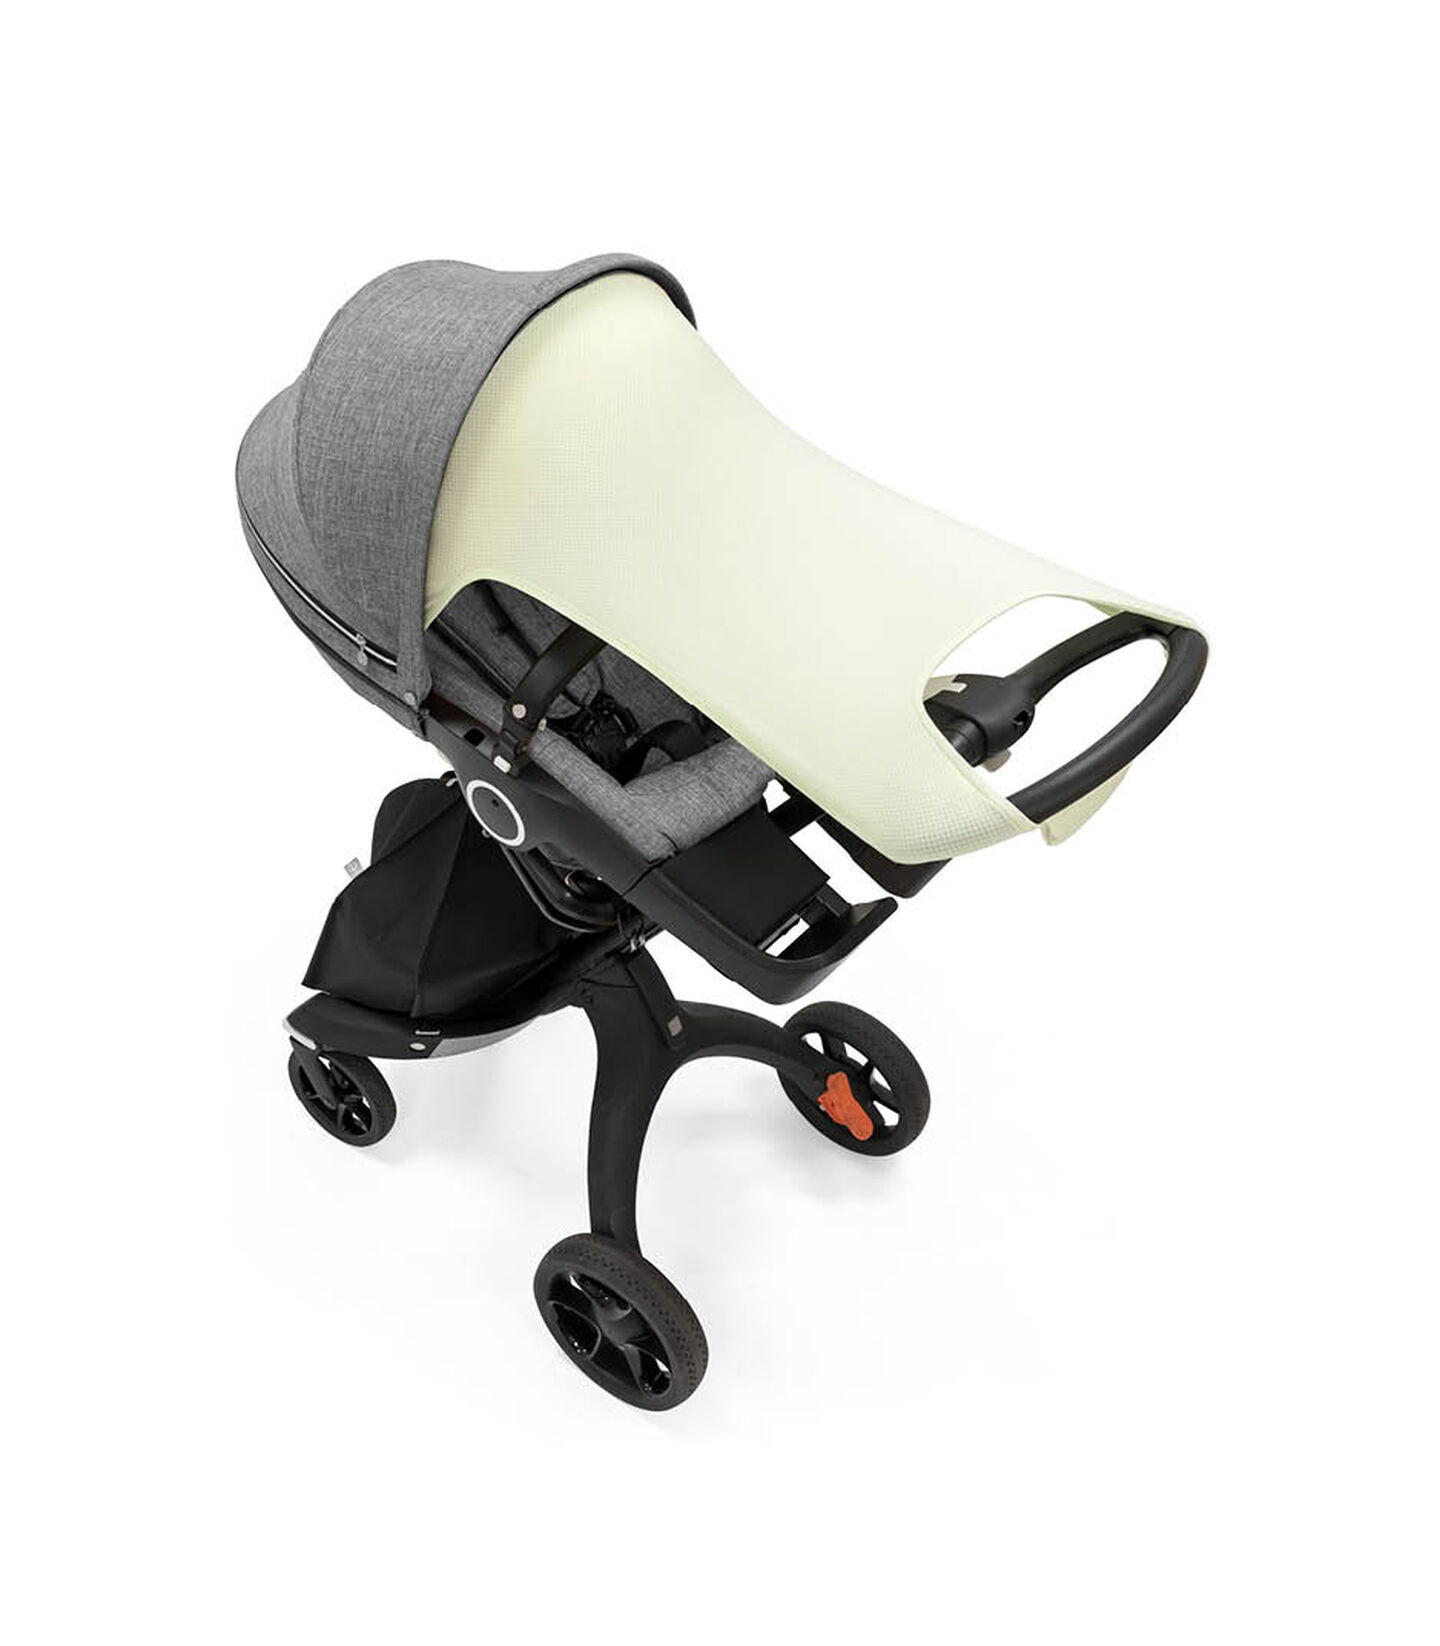 Stokke® Stroller Sun Shade Light Pistachio, Pistachio, mainview view 2